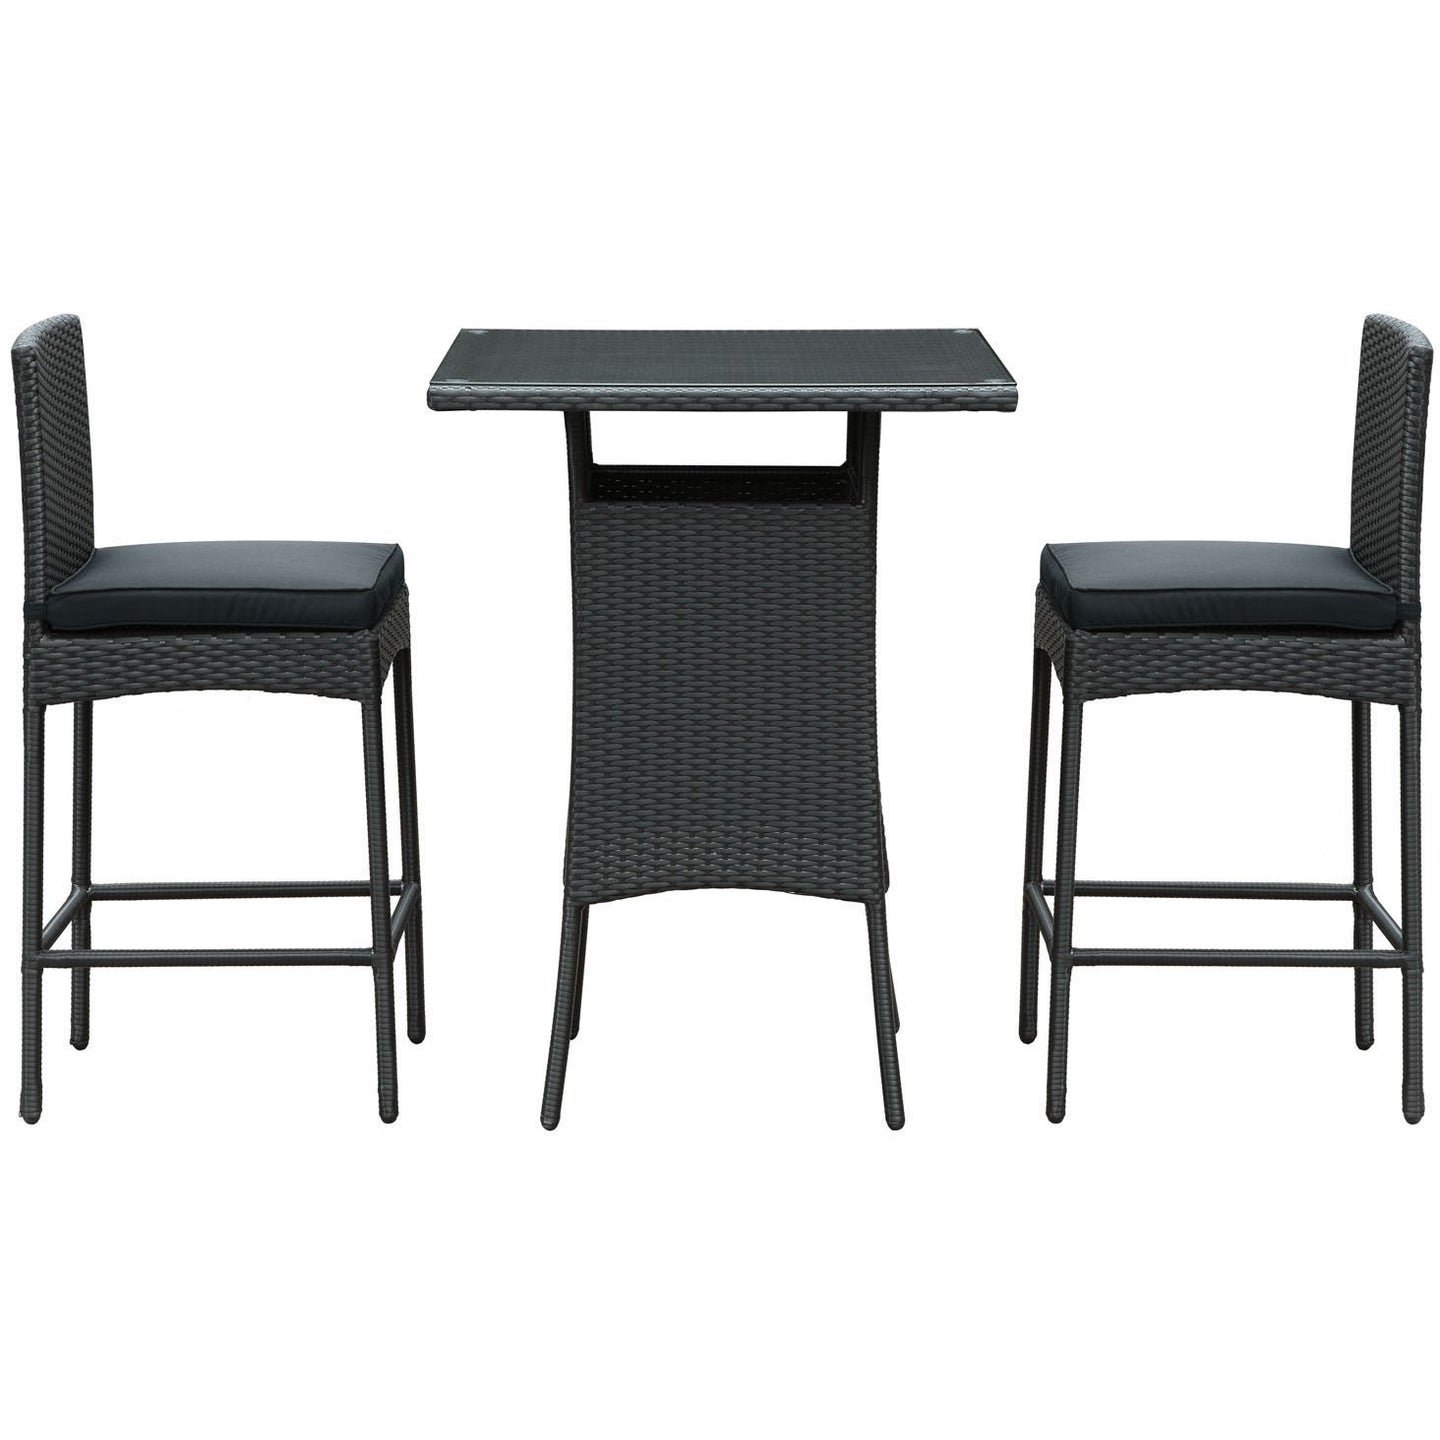 Modway Furniture Cerveza 3 Piece Outdoor Patio Pub Set , Bar and Dining - Modway Furniture, Minimal & Modern - 1